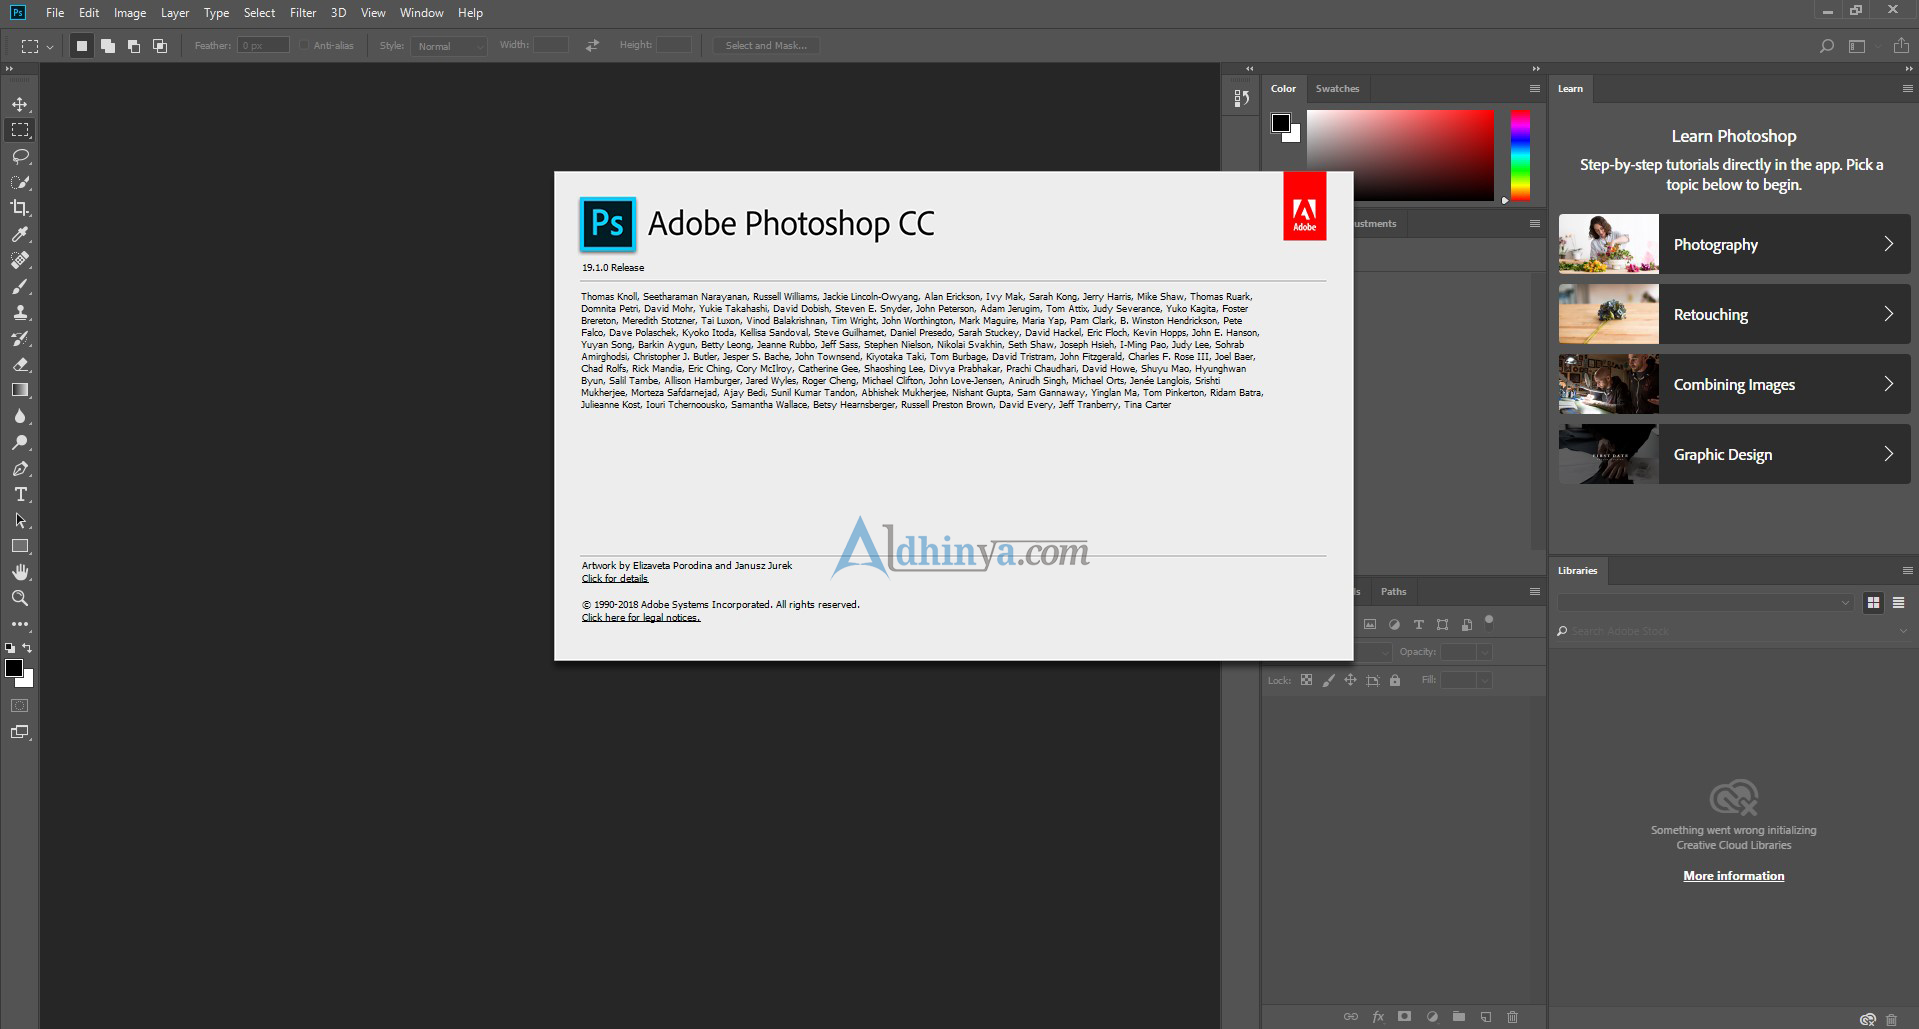 Free Download Adobe Photoshop CC 2018 v19.1 Final Update Terbaru Full